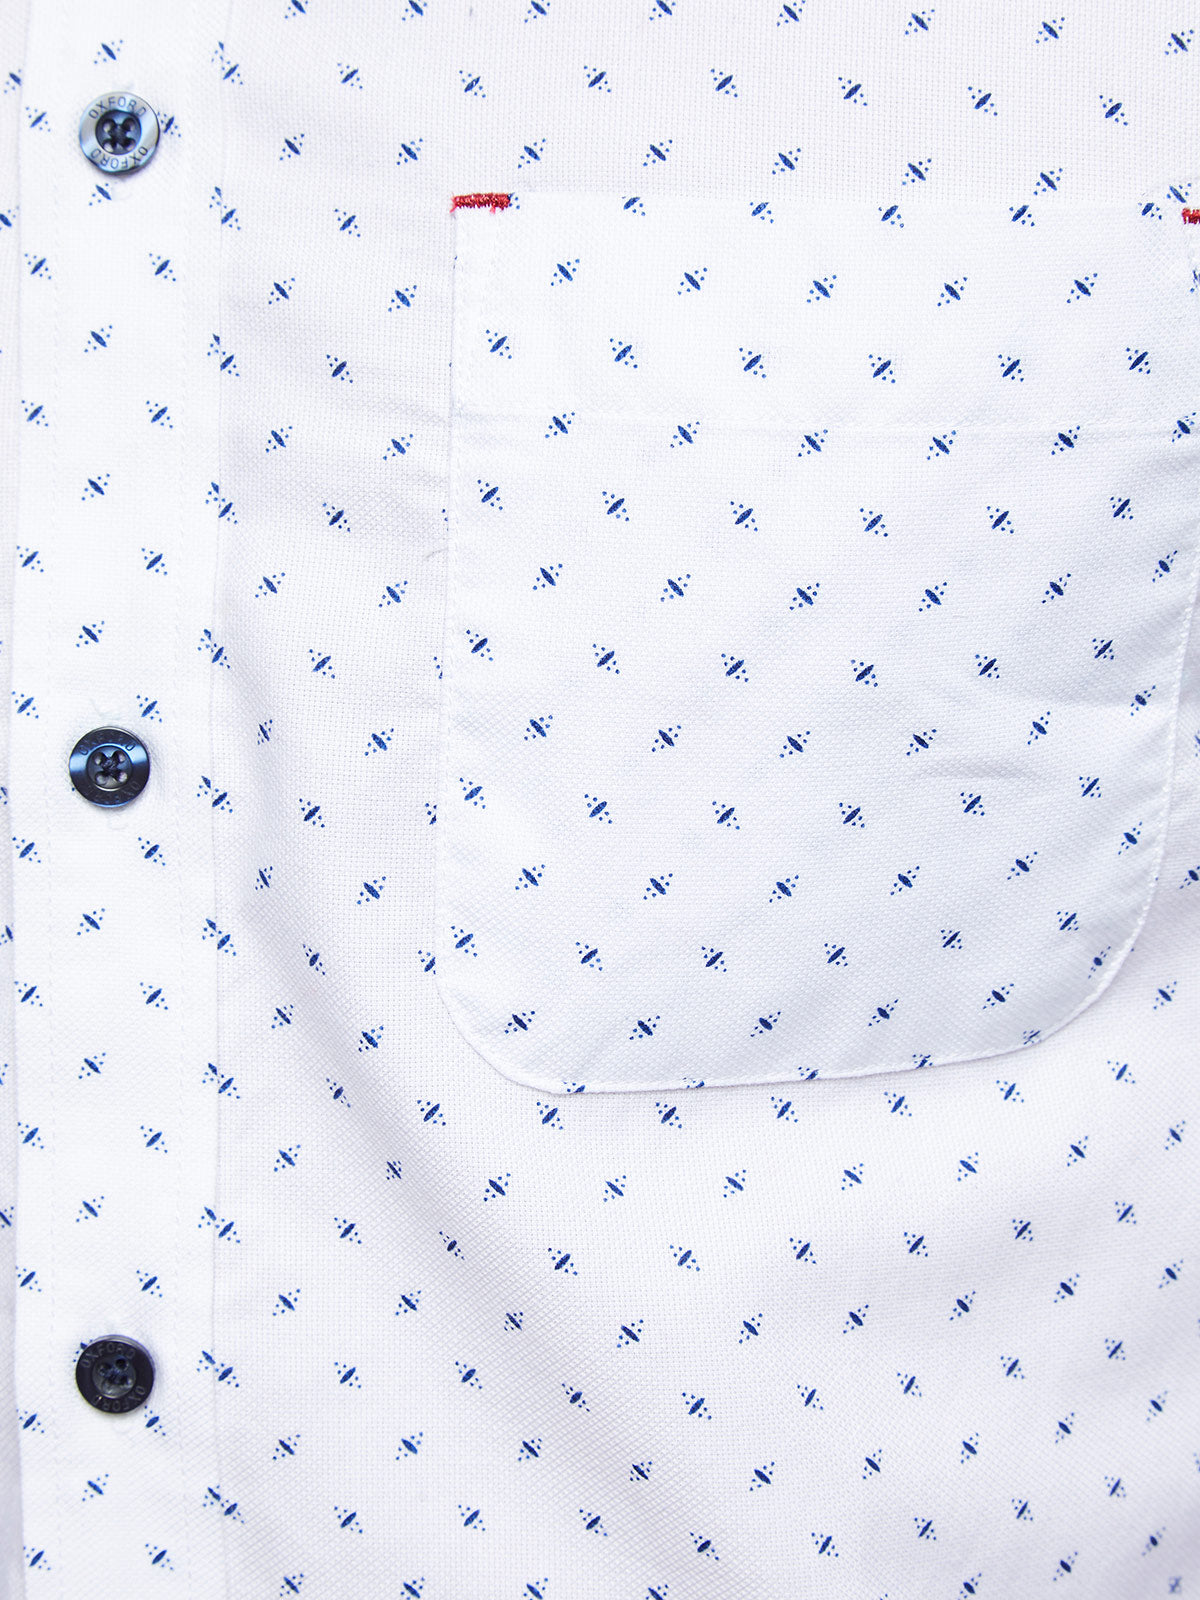 KENTON OXFORD WEAVE SHIRT WHITE/NAVY